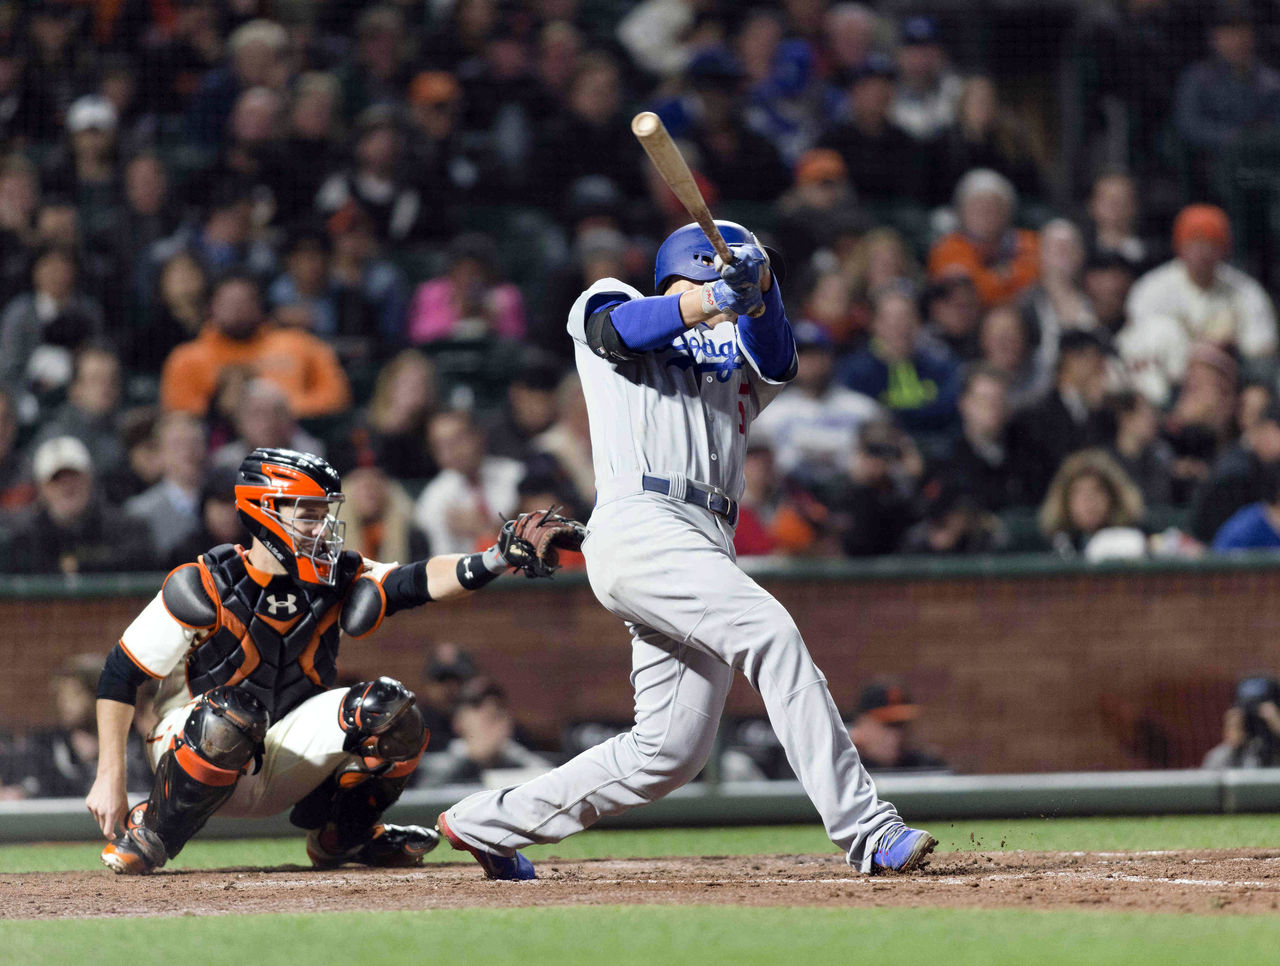 Cropped 2017 04 27t040713z 459214427 nocid rtrmadp 3 mlb los angeles dodgers at san francisco giants